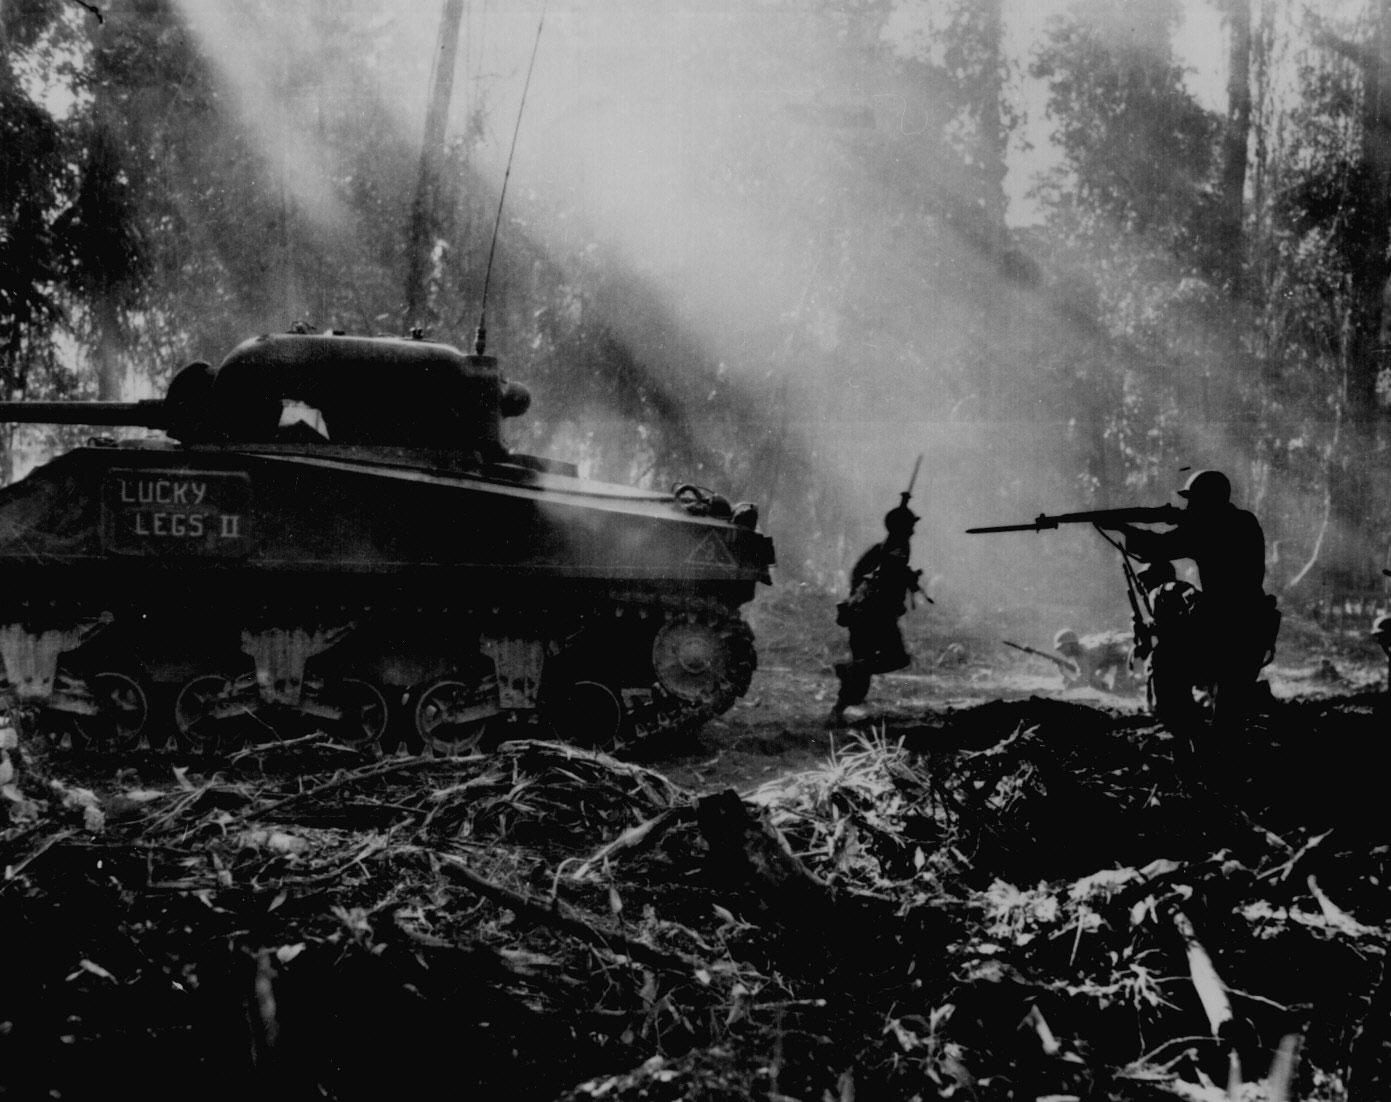 [Photo] American troops advanced under the cover of M4 Sherman tank 'Lucky Legs II' during mop up operations on Bougainville, Solomon Islands, Mar 1944 | World War II Database